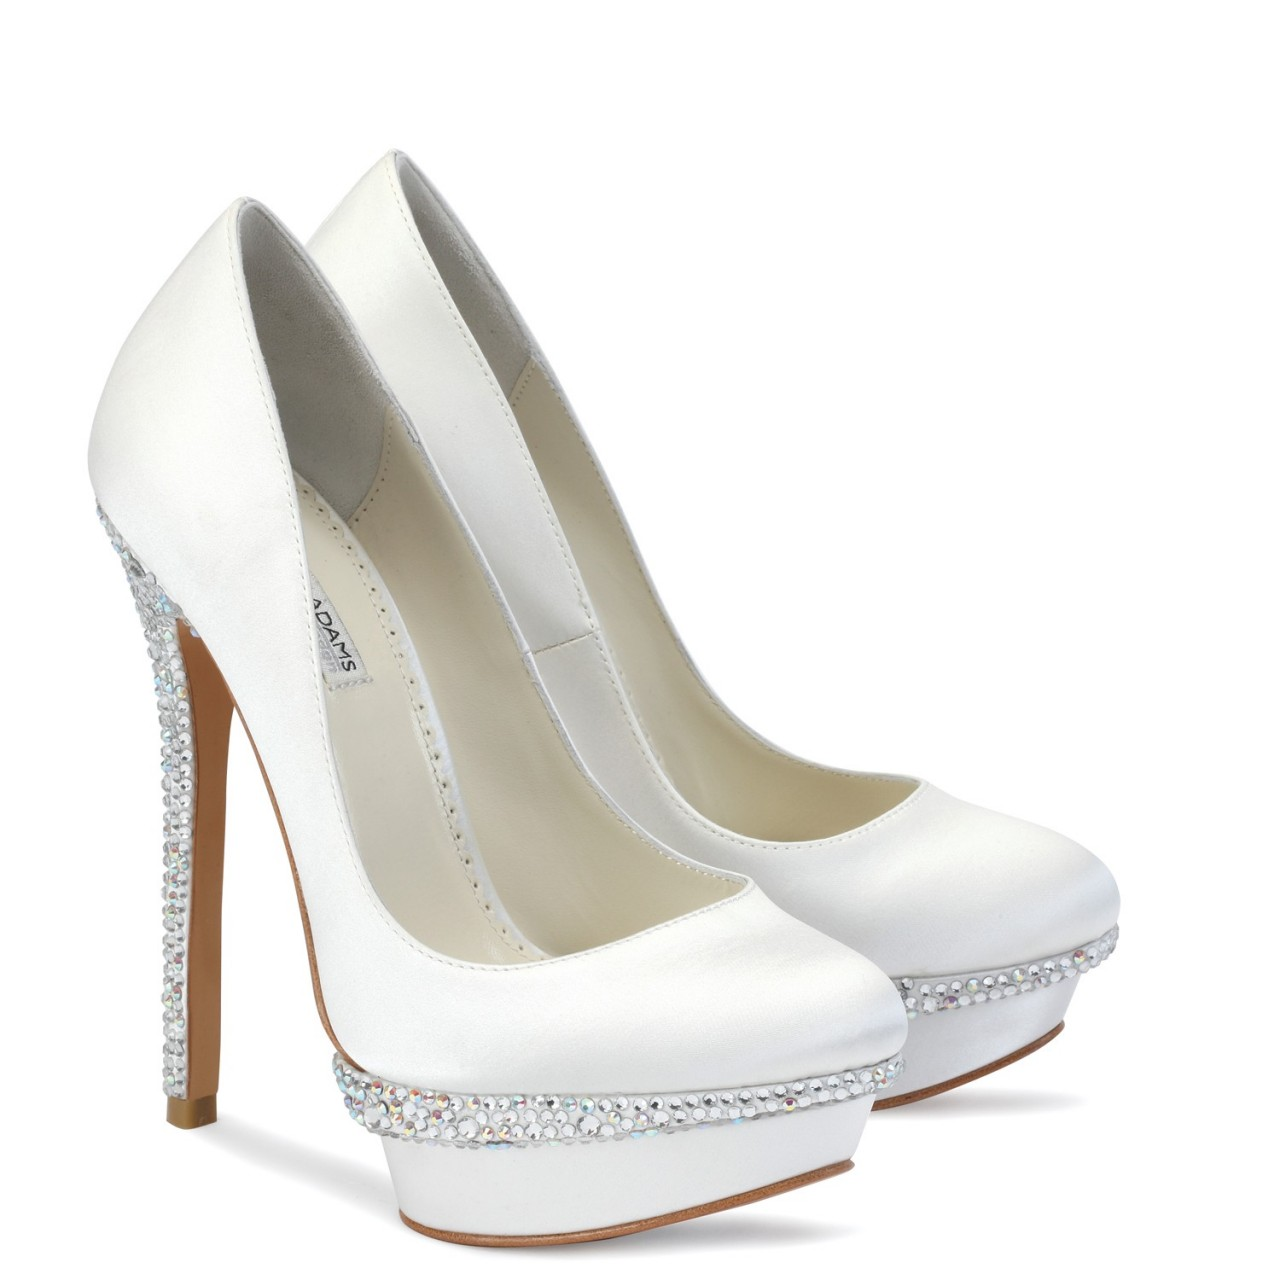 wedding shoes with high heels and close toe